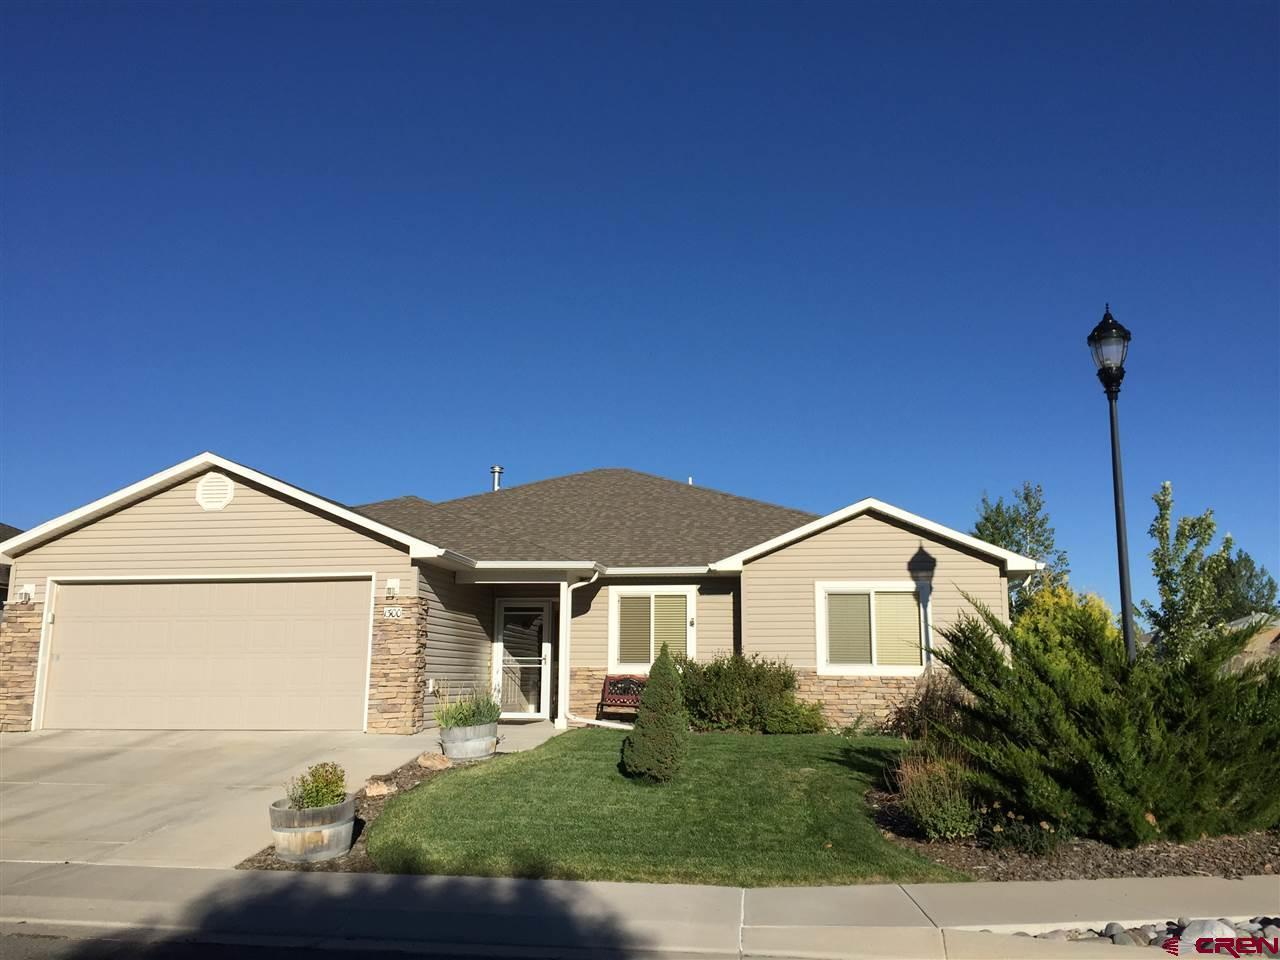 listing 1300 brush creek montrose co mls 711478 delta and montrose county colorado area